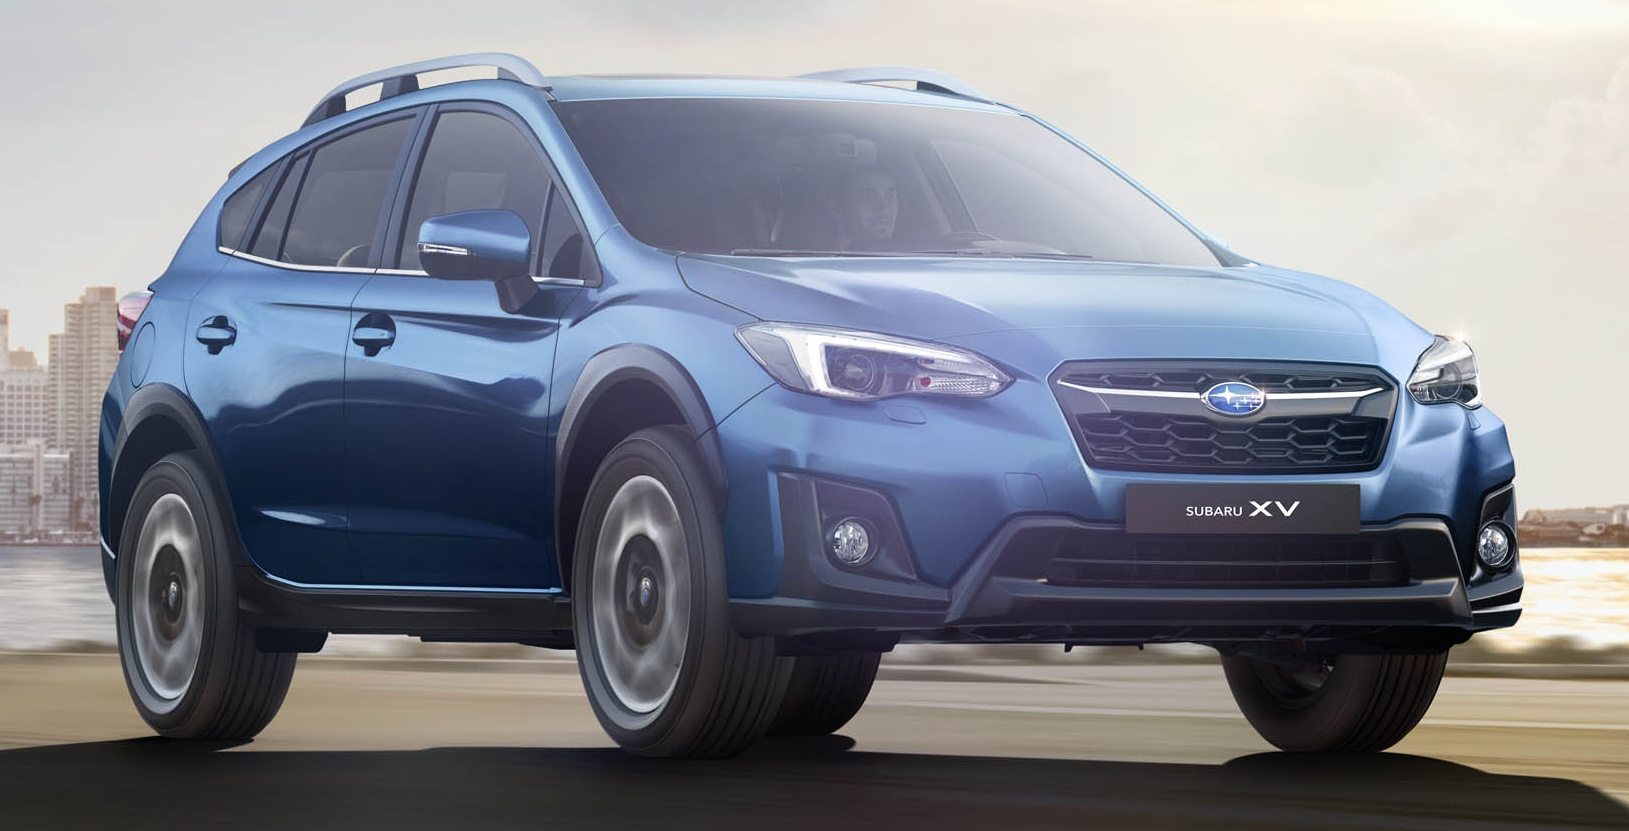 2018 subaru xv crosstrek specs hybrid auto release - Beyond That Subaru Claims That With Its Lower Centre Of Gravity And Improved Suspension System The Vehicle Now Offers Outstanding Hazard Avoidance